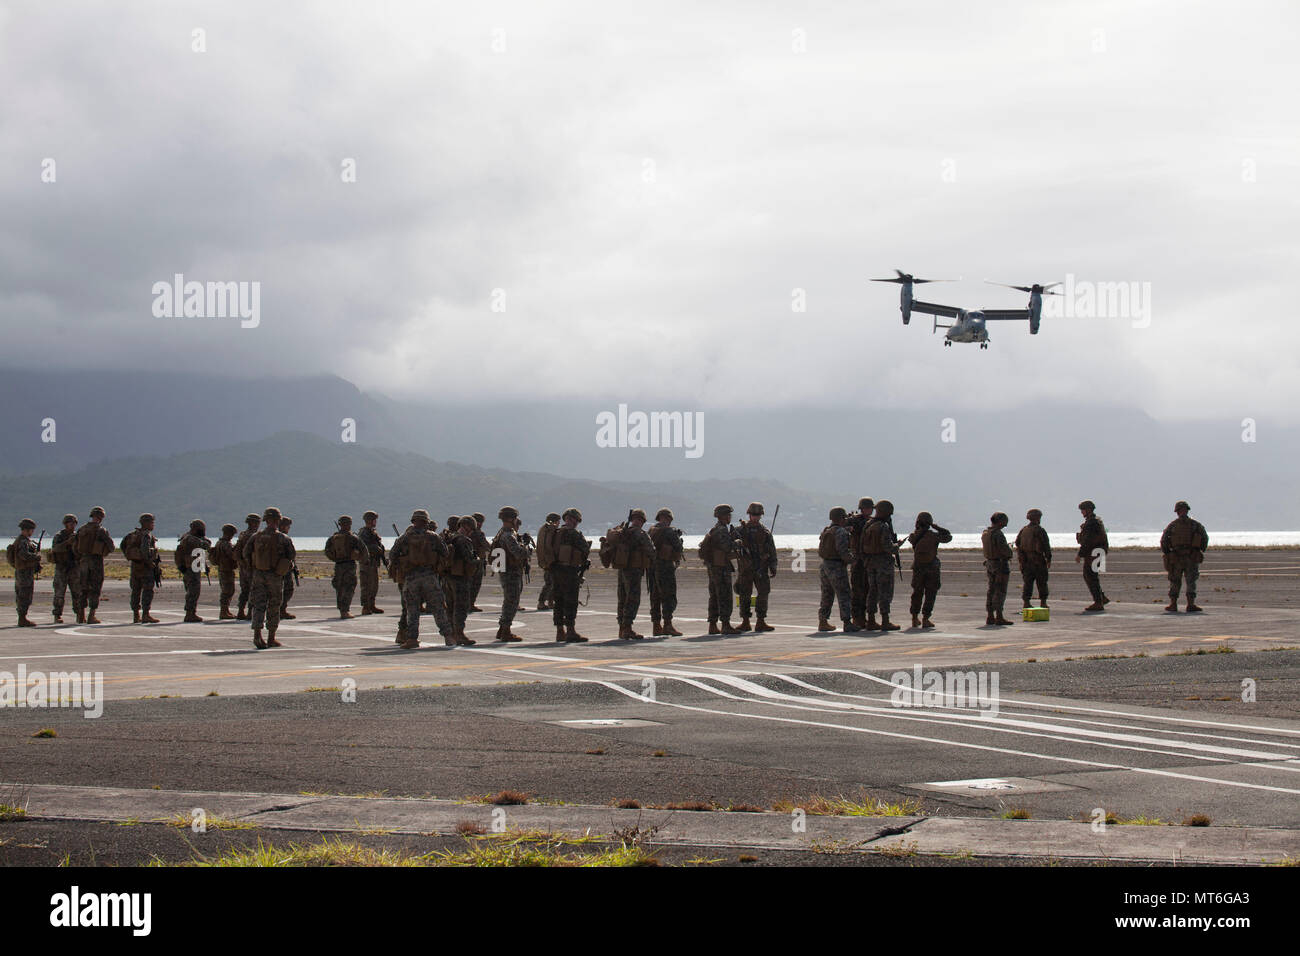 U.S. Marines with India Company, 3rd Battalion, 3rd Marine Regiment, standby for a MV-22 Osprey aircraft with Marine Medium Tiltrotor Squadron 268, prior to conducting a non-combatant evacuation operation (NEO) aboard Marine Corps Air Station Kaneohe Bay, July 25, 2017. During a NEO, Marines provide security, evacuate civilians, establish an intermediate support base and operate from naval support platforms at sea. Military personnel with Marine Aircraft Group 24 and 3rd Marines worked together in conducting a NEO which took place at three training areas across Oahu to include Marine Corps Tra Stock Photo